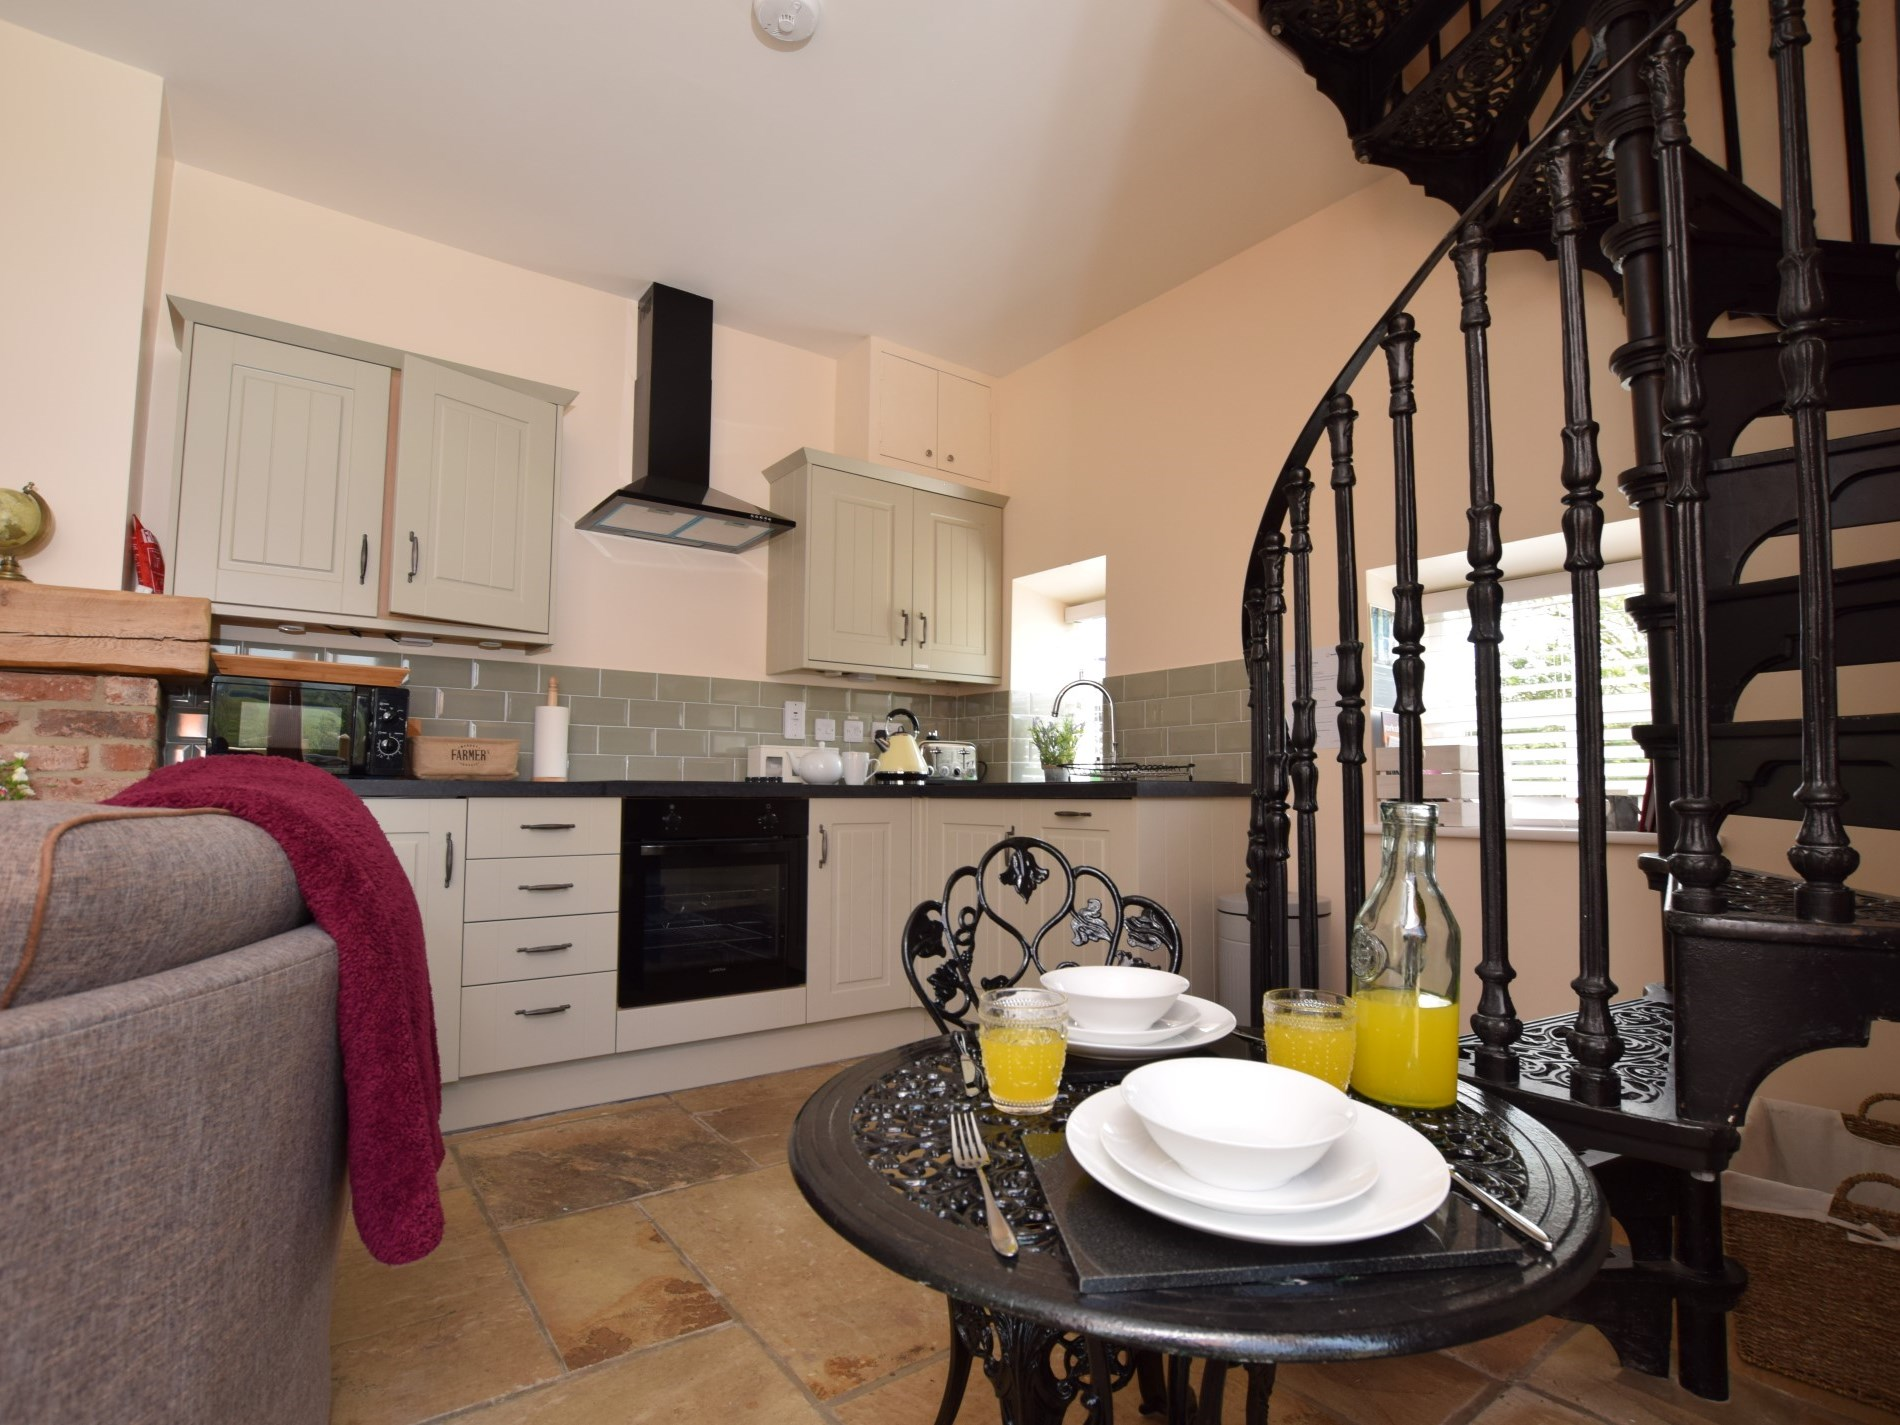 1 Bedroom Cottage in Whitby - Dog Friendly Cottage in ...